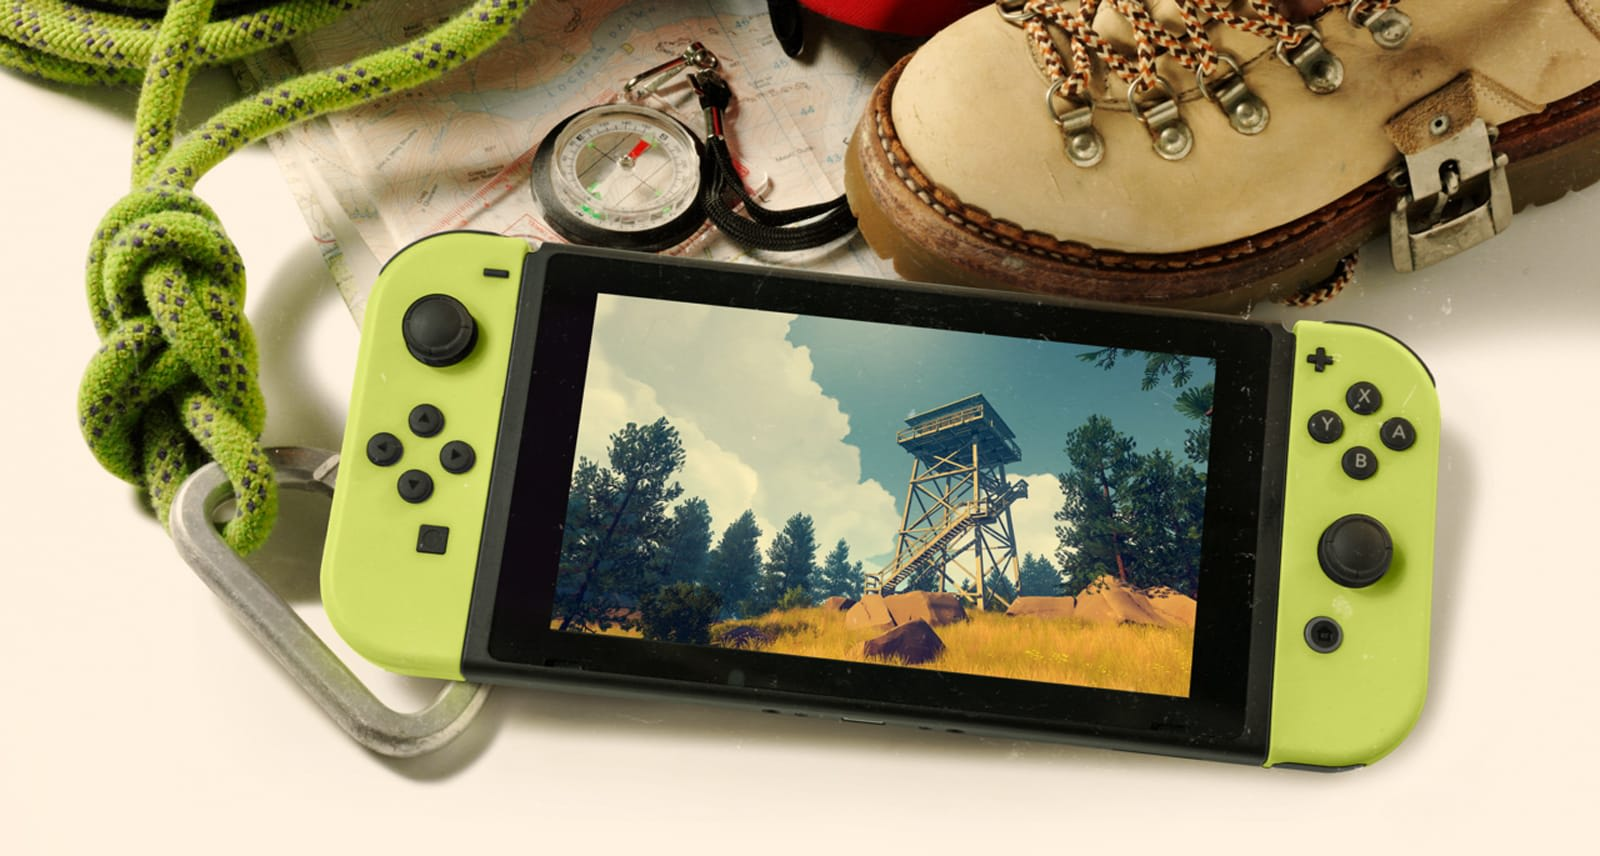 'Firewatch' comes to Nintendo Switch on December 17th